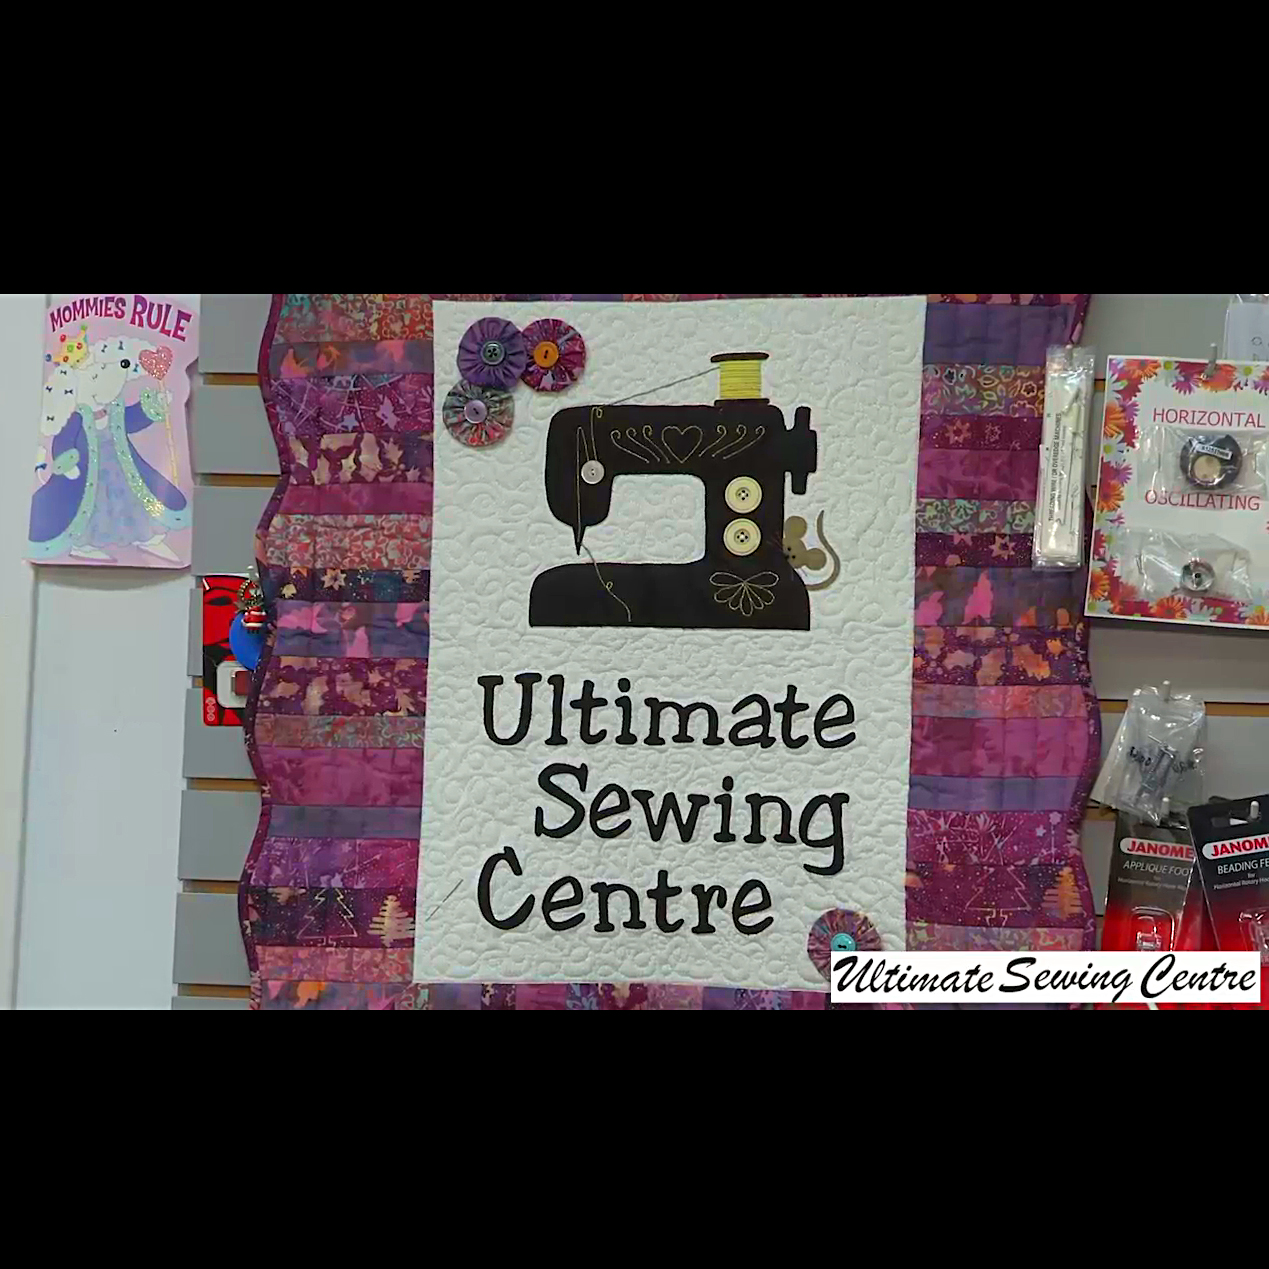 Ultimate Sewing Centre - Fabric Stores - 9054369193